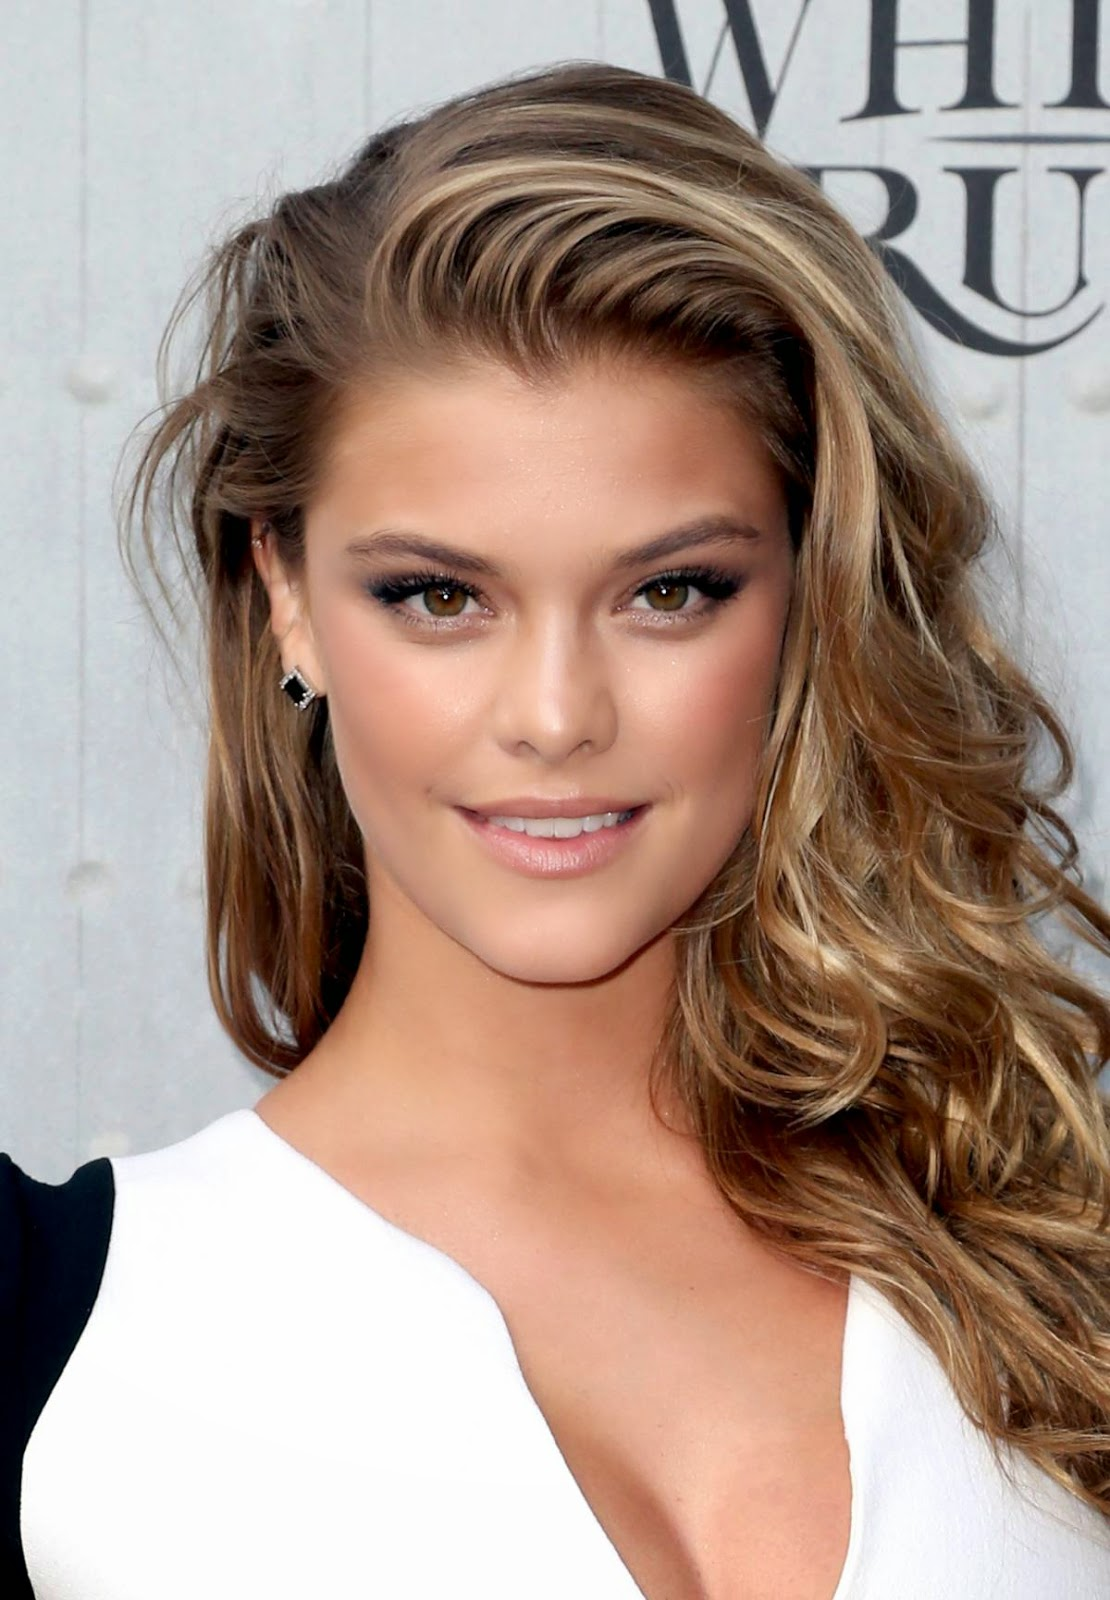 Nina Agdal - Hot Tight Drees in Spike TV's Guys Choice 2014 Awards